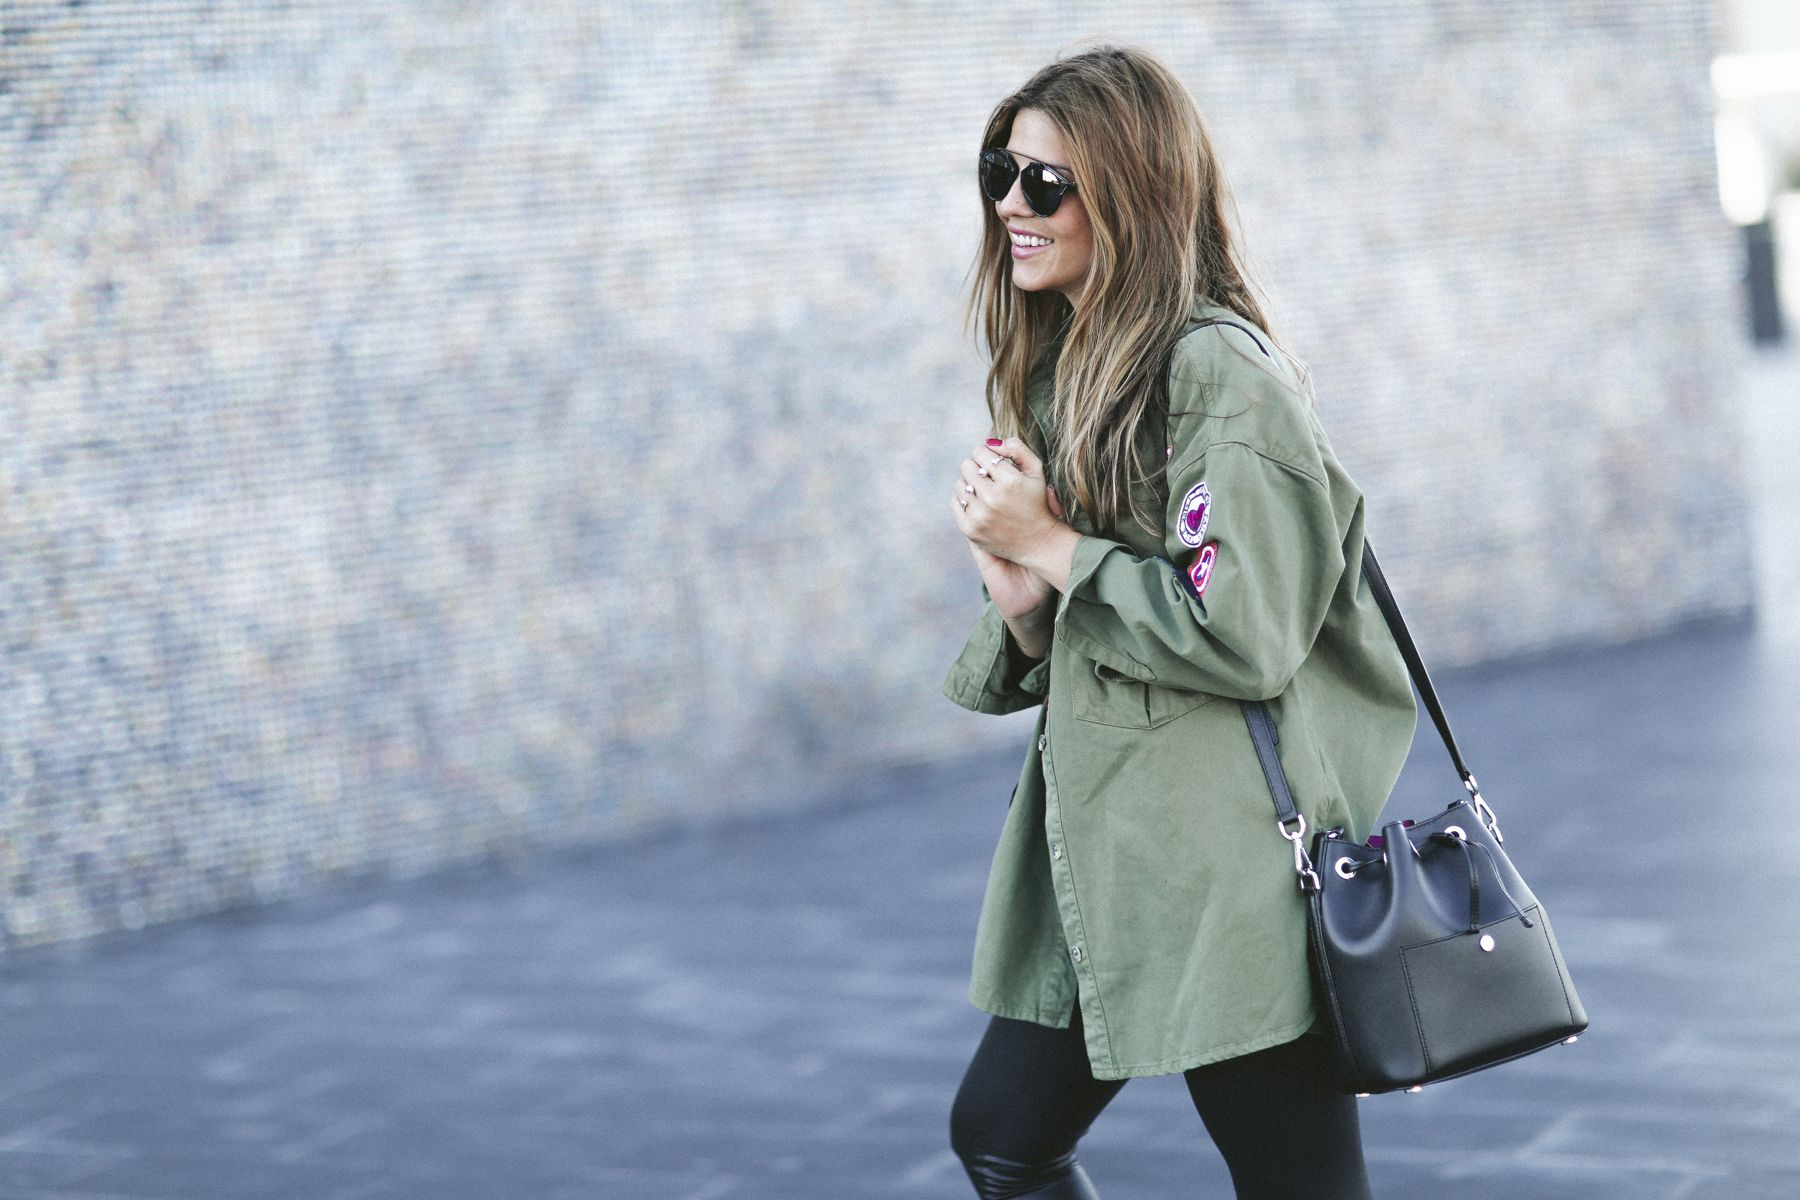 botas boots outfit look primavera spring camisa mango cuero leather leggings boyfriend oversize  Rayban gafas de sol sunglasses street style trendy taste bolso bag michael kors pull and bear parka zara jersey sweater_5